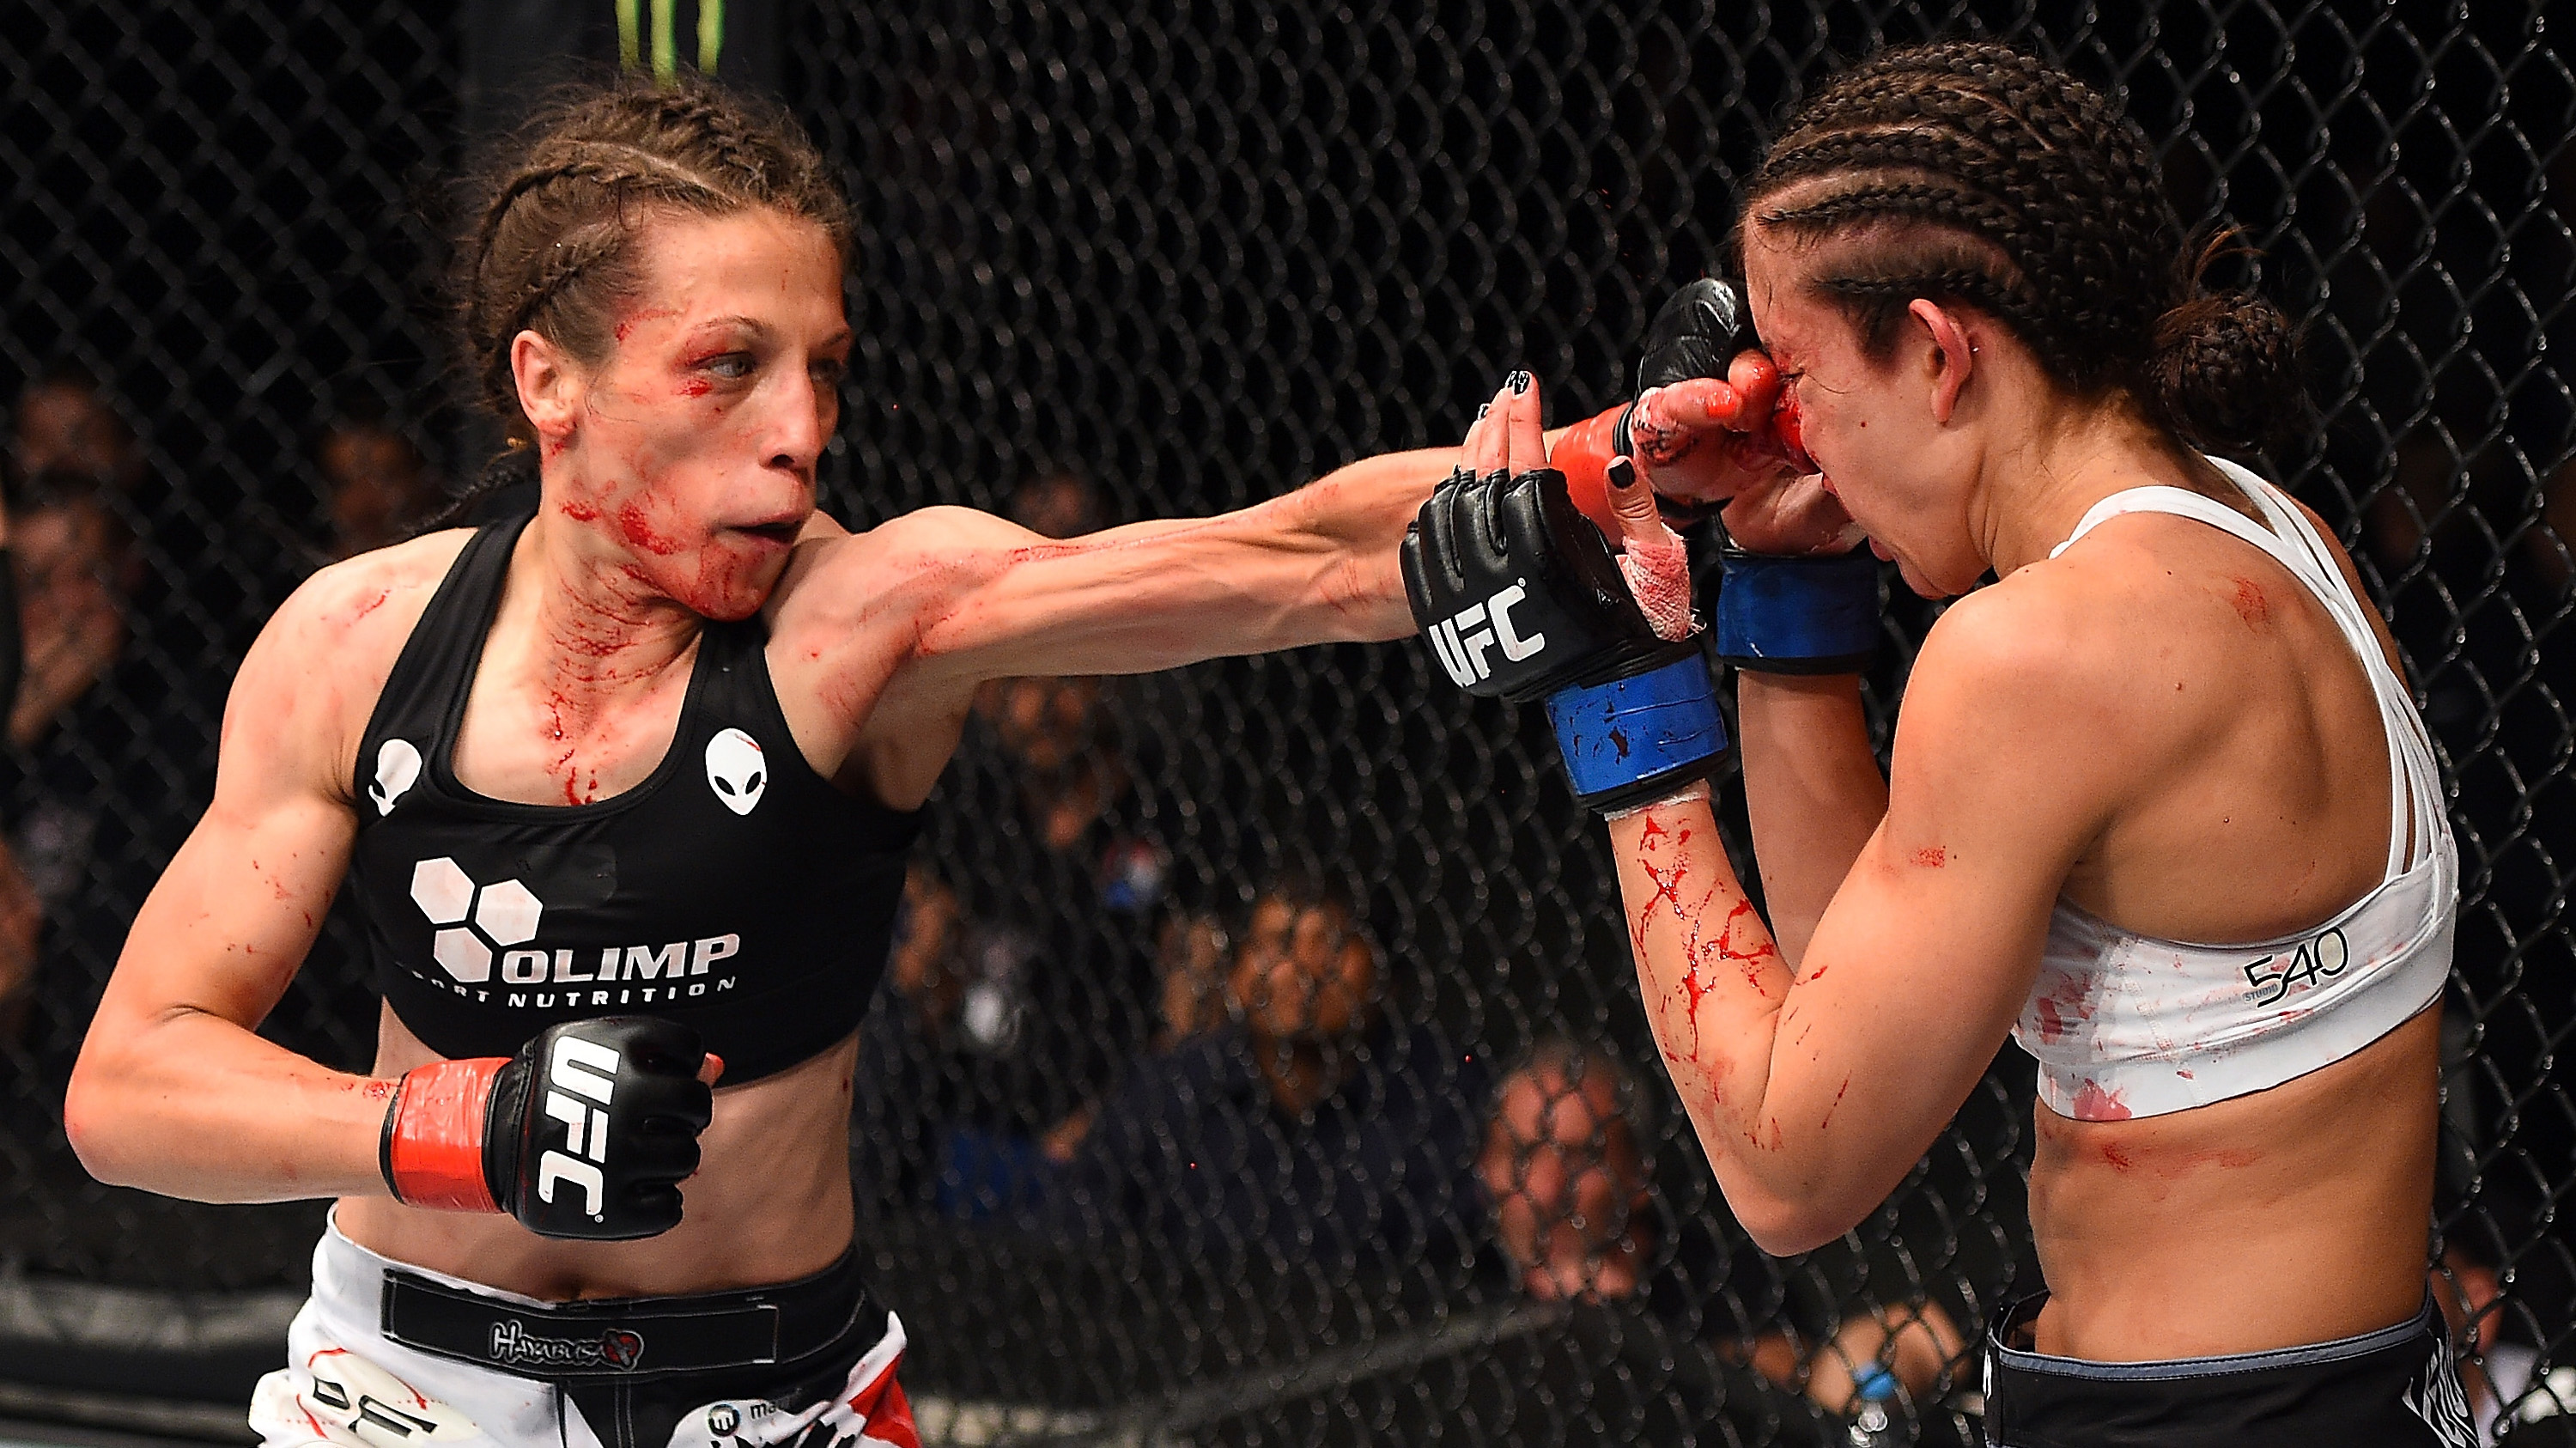 Joanna Jedrzejczyk (Photo by Josh Hedges/Zuffa LLC/Zuffa LLC via Getty Images)